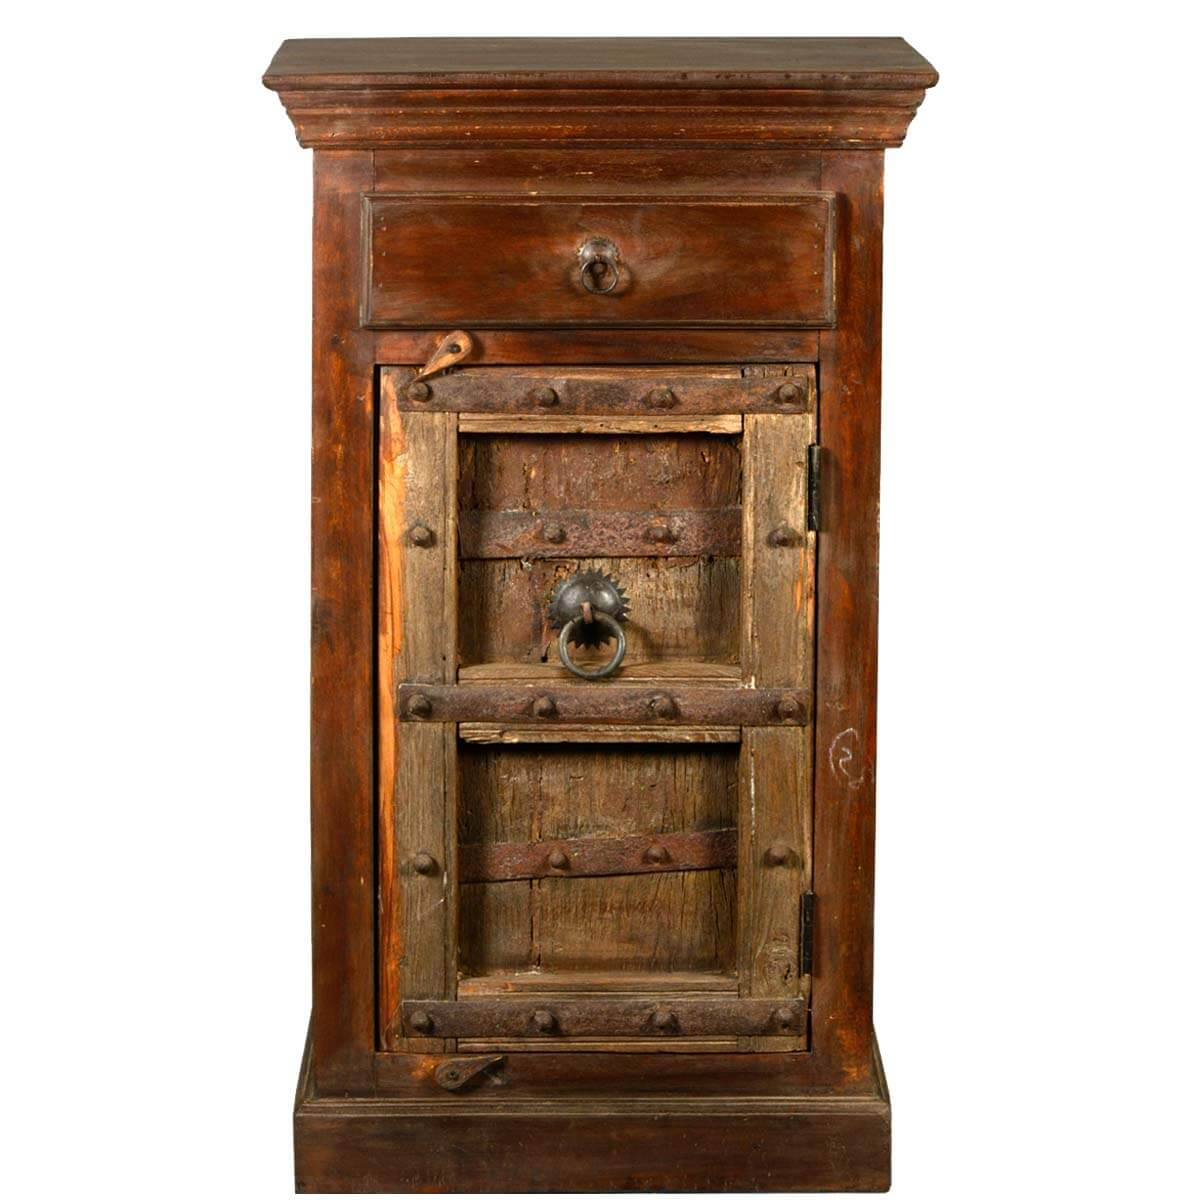 Gothic Golden Door Reclaimed Wood Night Stand End Table  : 50841 from sierralivingconcepts.com size 1200 x 1200 jpeg 131kB